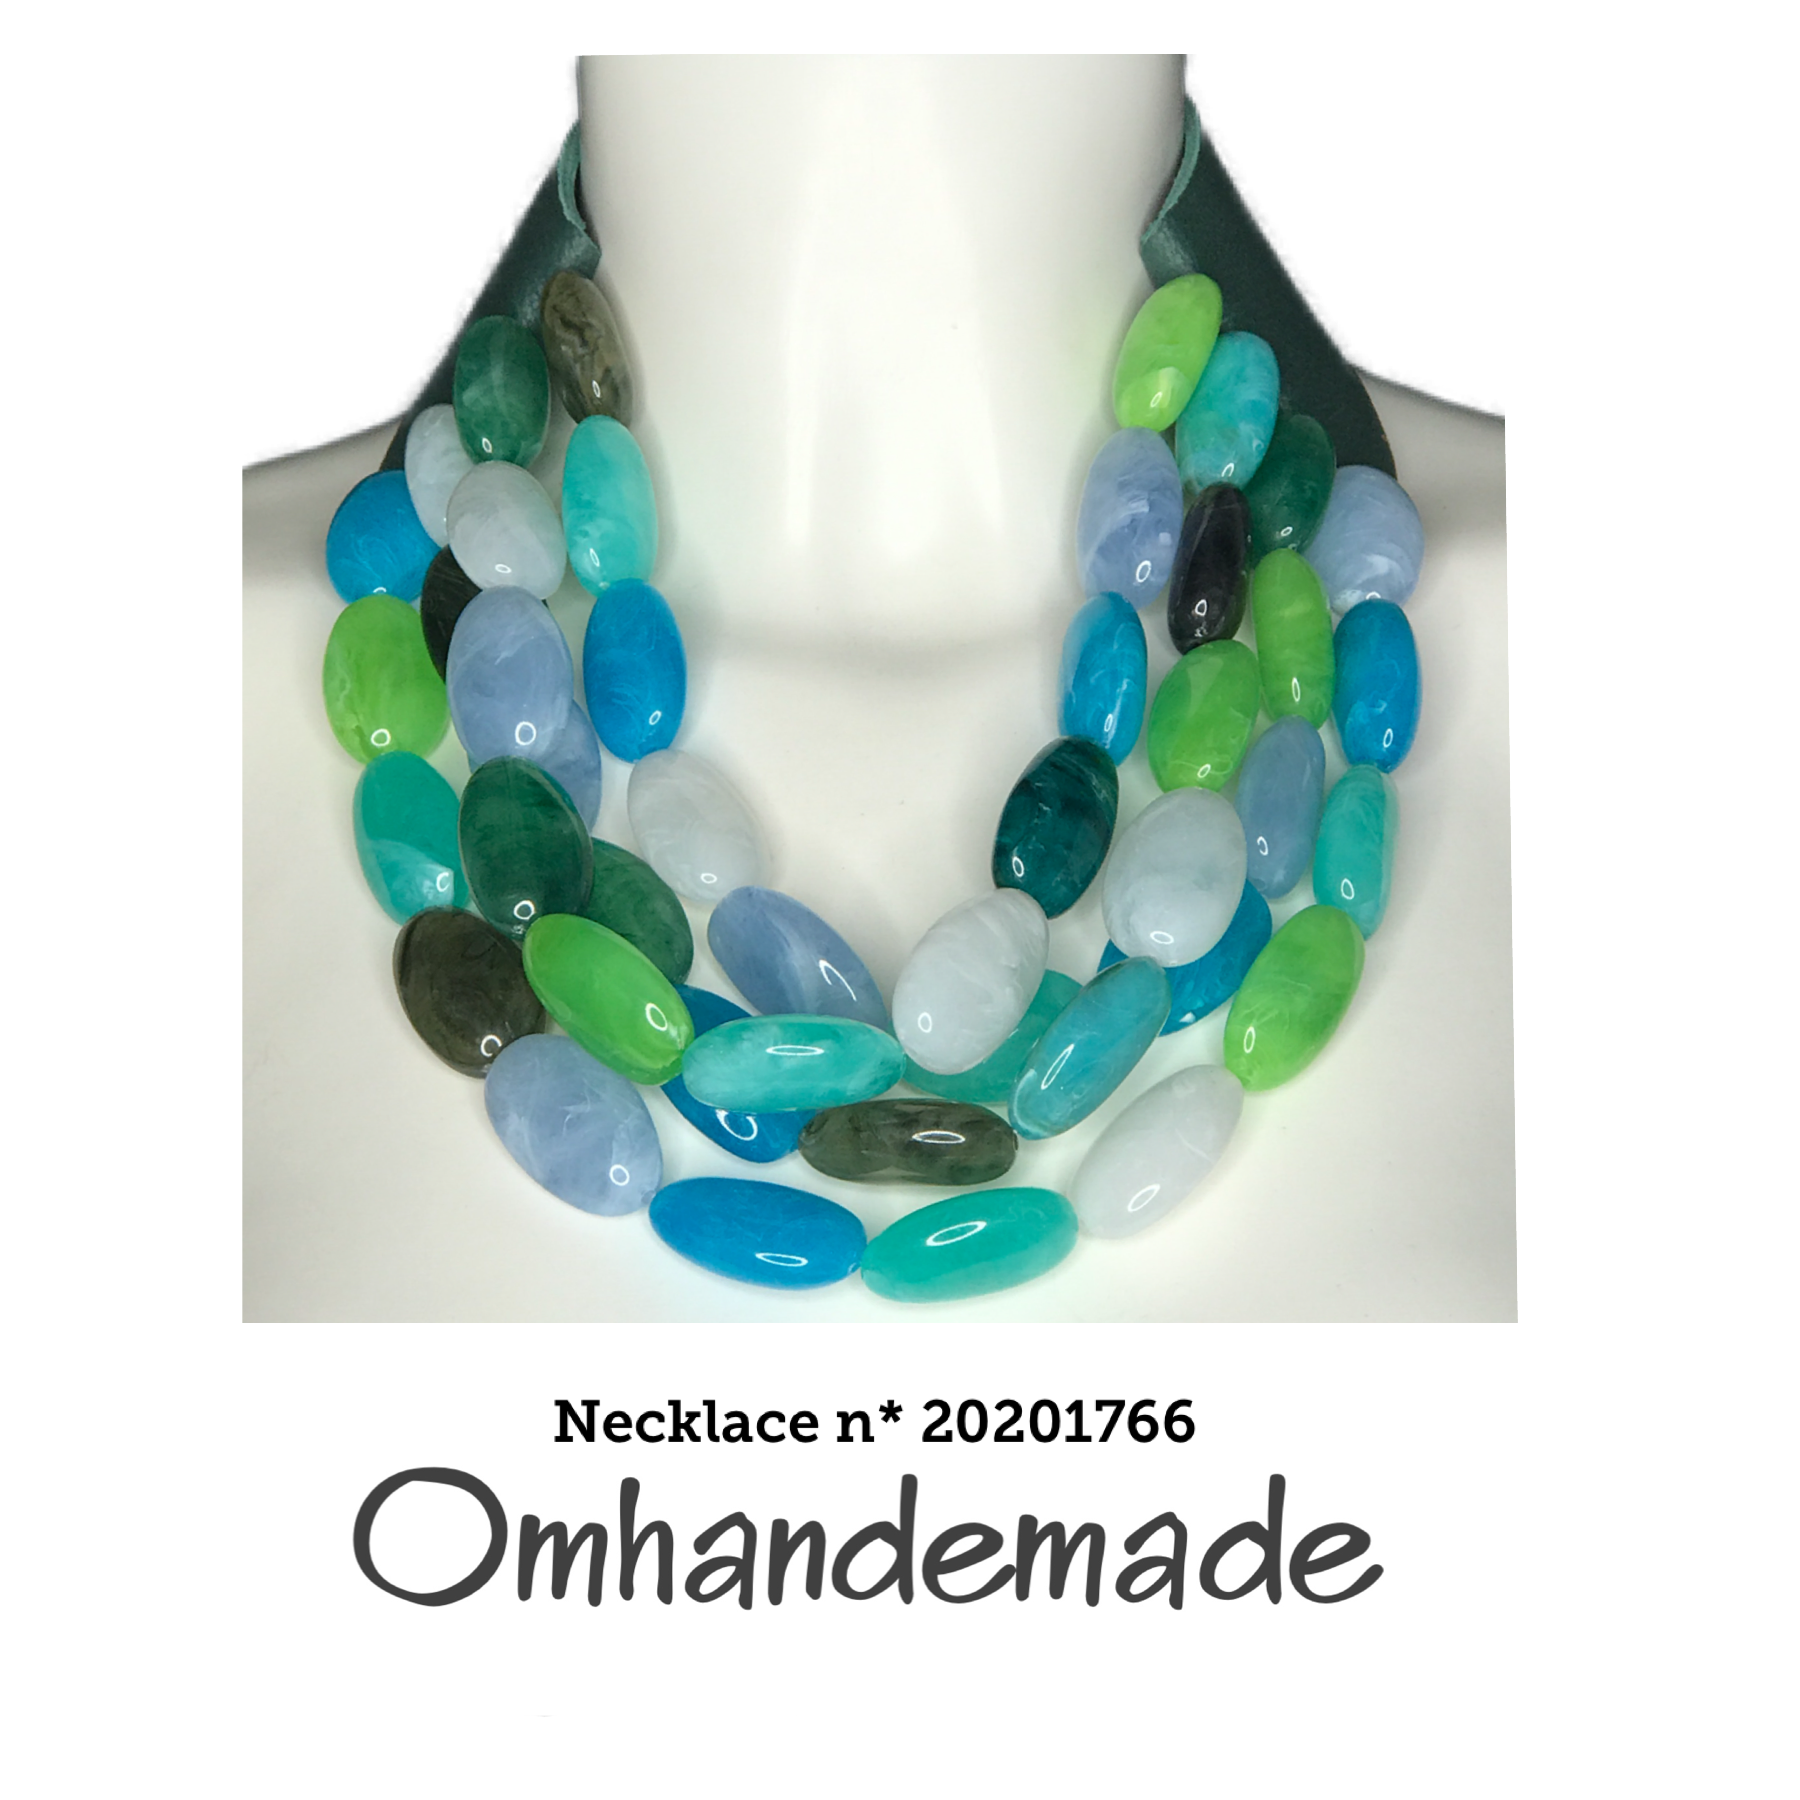 20201766 Collana girocollo turchese multicolor multifilo stratificata in resina - Omhandemade